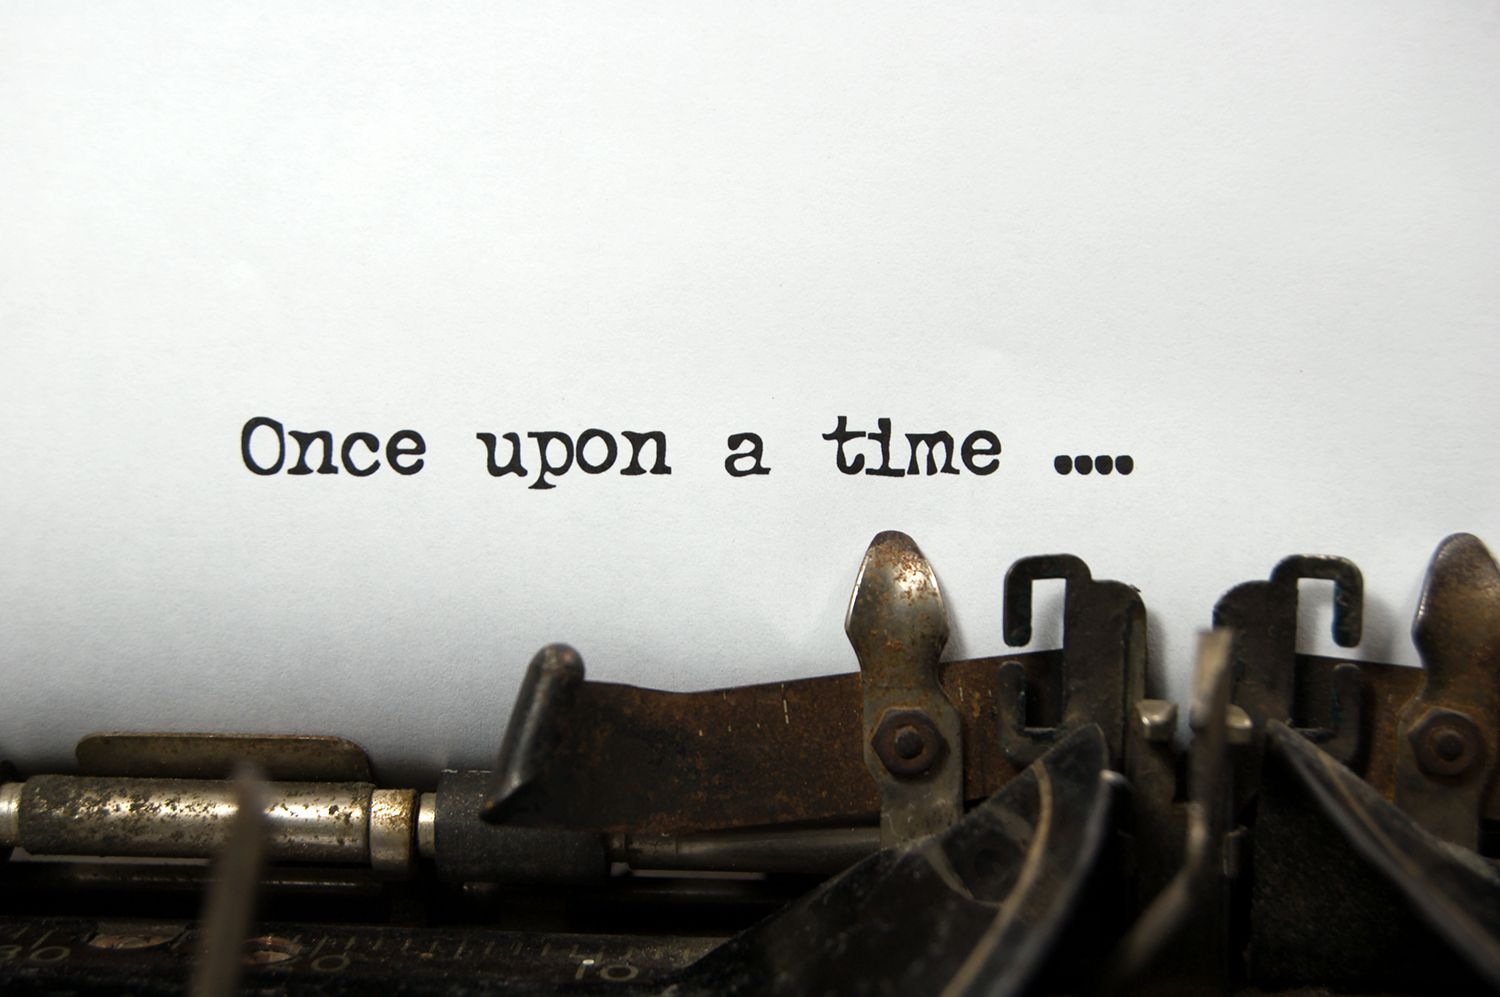 Why, Oh Why did I become a writer?